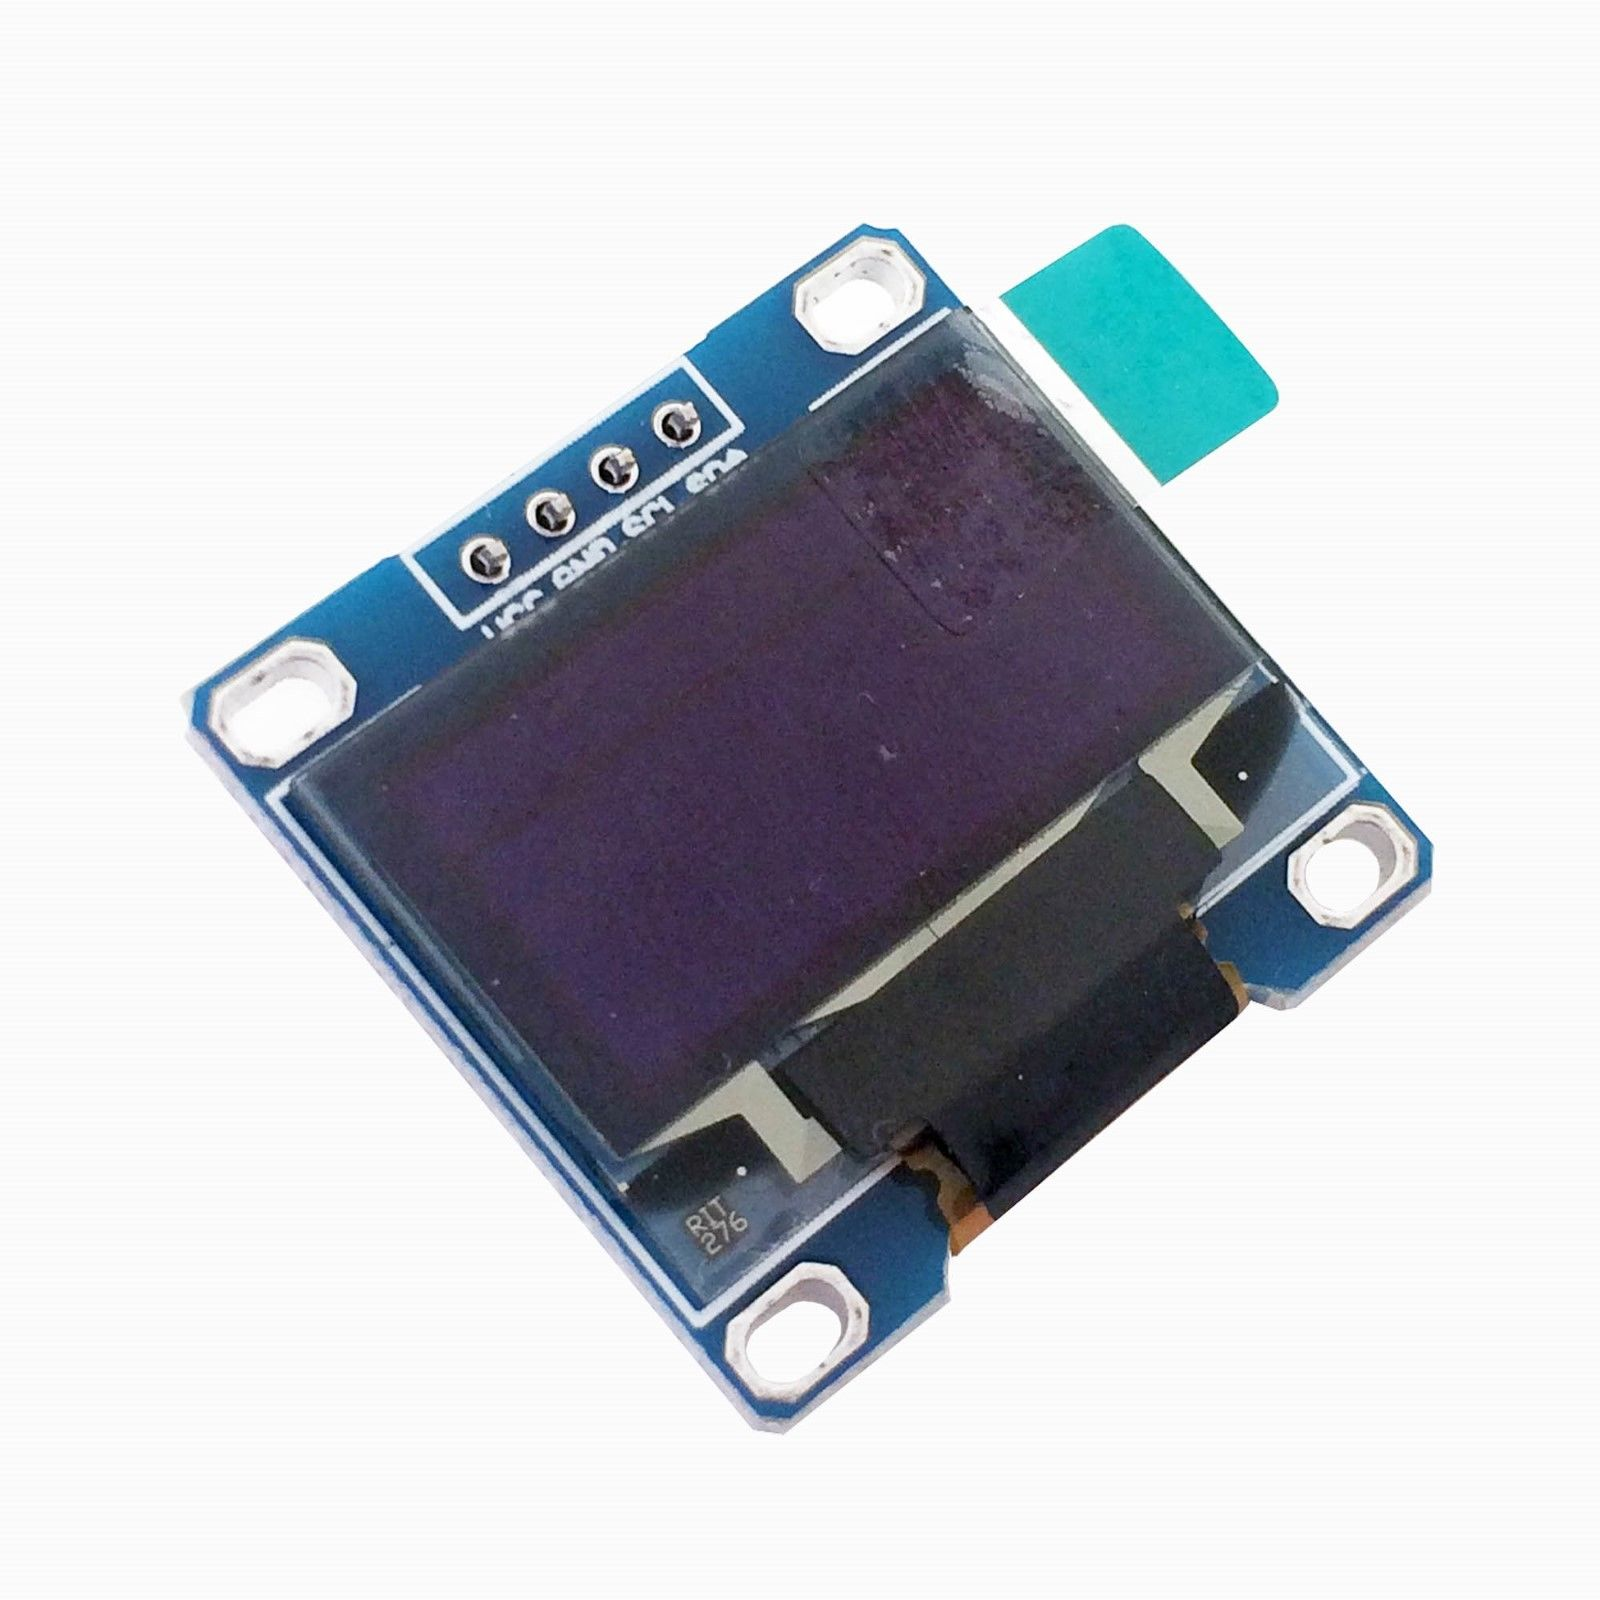 128x64 Tiny OLED display